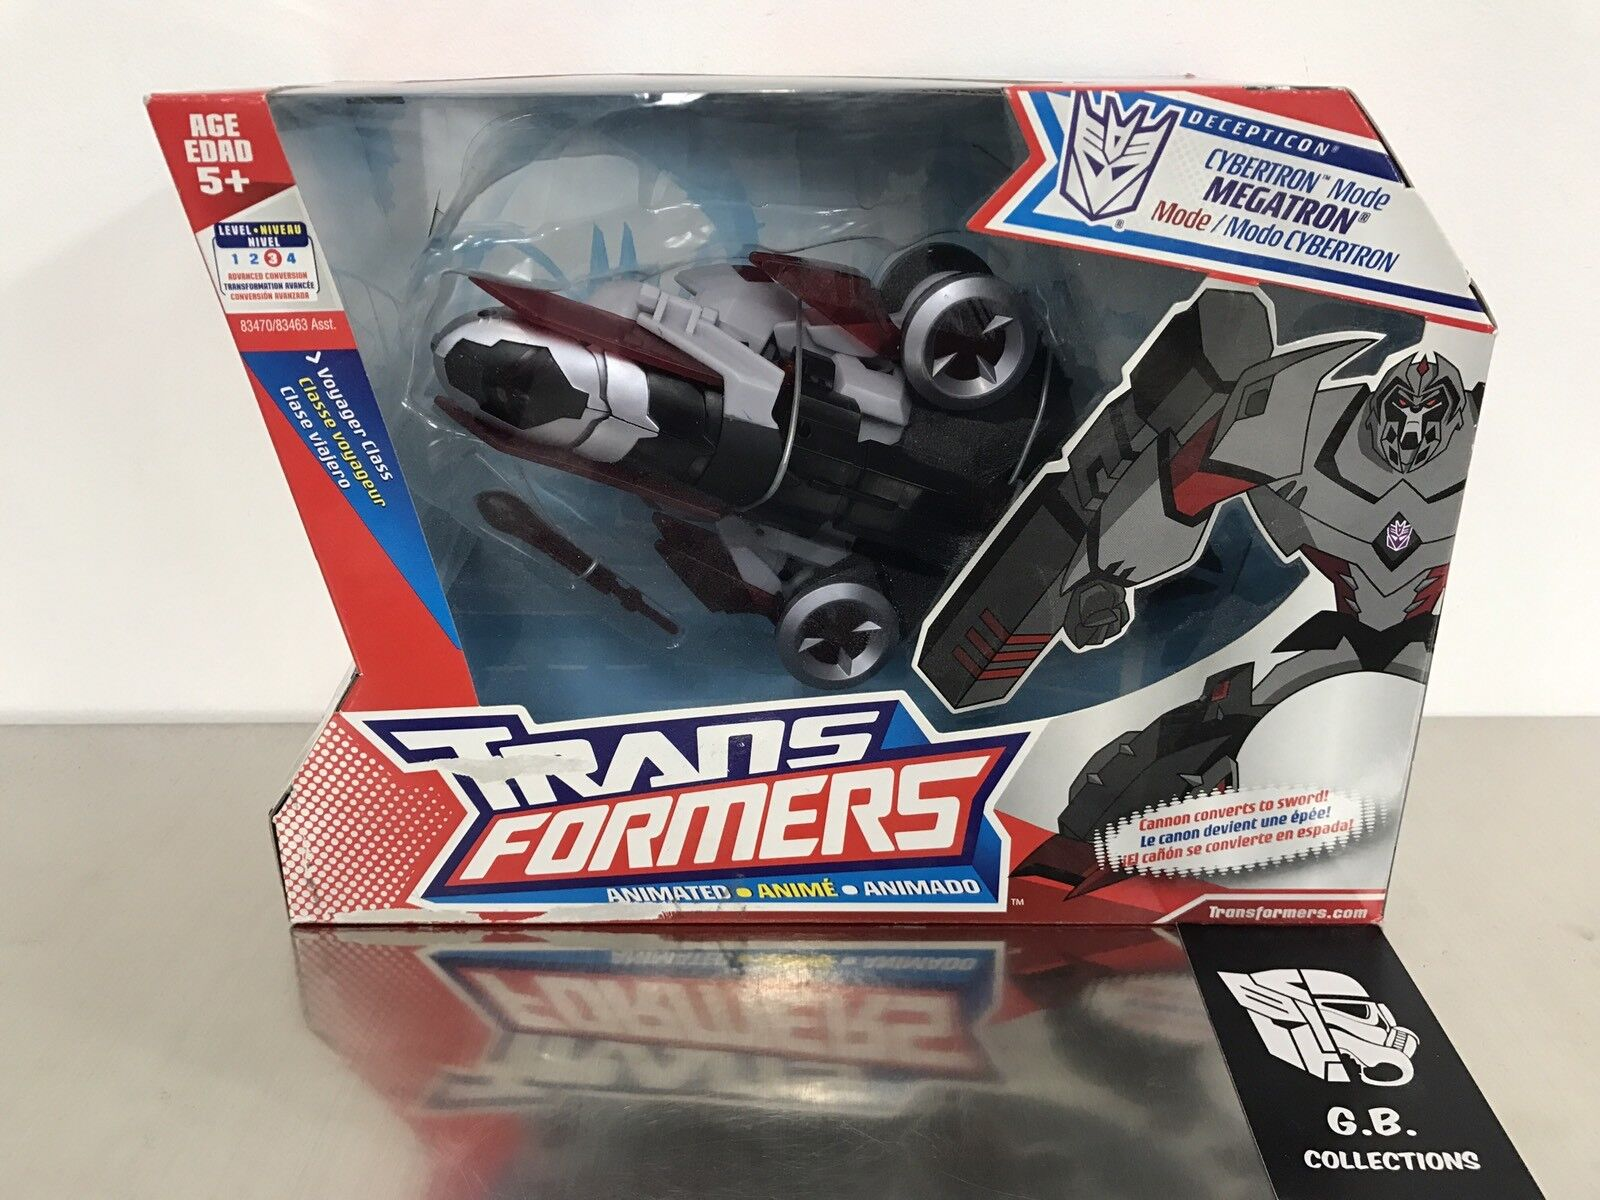 Transformers Animated Cybertron Mode Megatron Voyager Class New Sealed